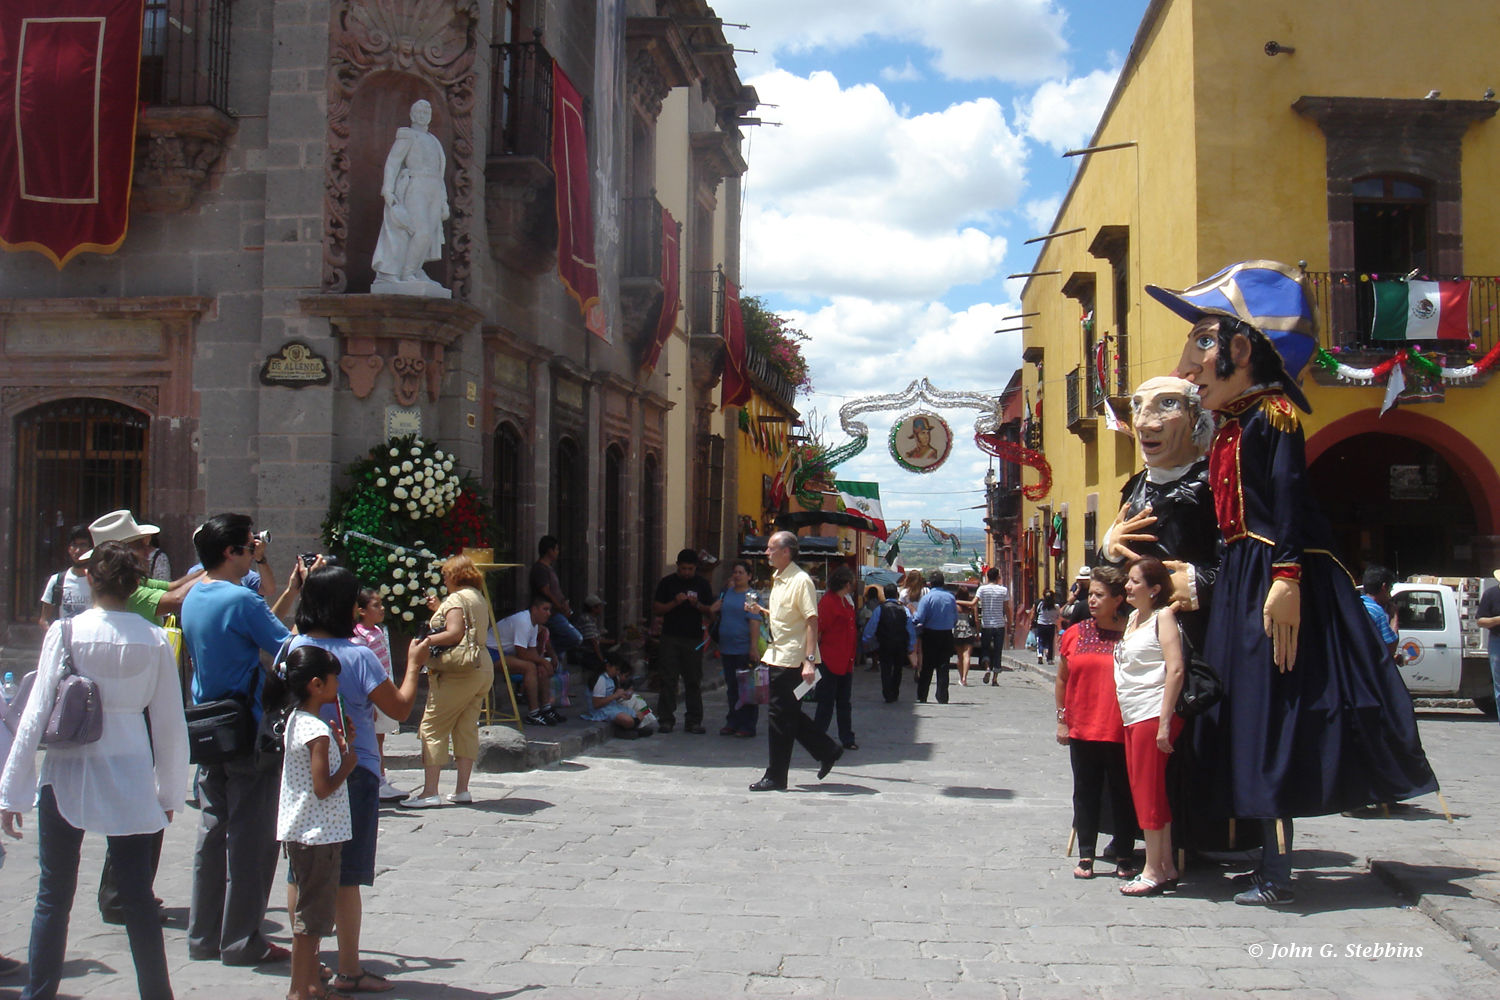 The independence festivities in San Miguel de Allende included a reenactment of the ride into town of the insurgents in 1810 and photo ops with giant street puppets masquerading as revolutionary heroes.